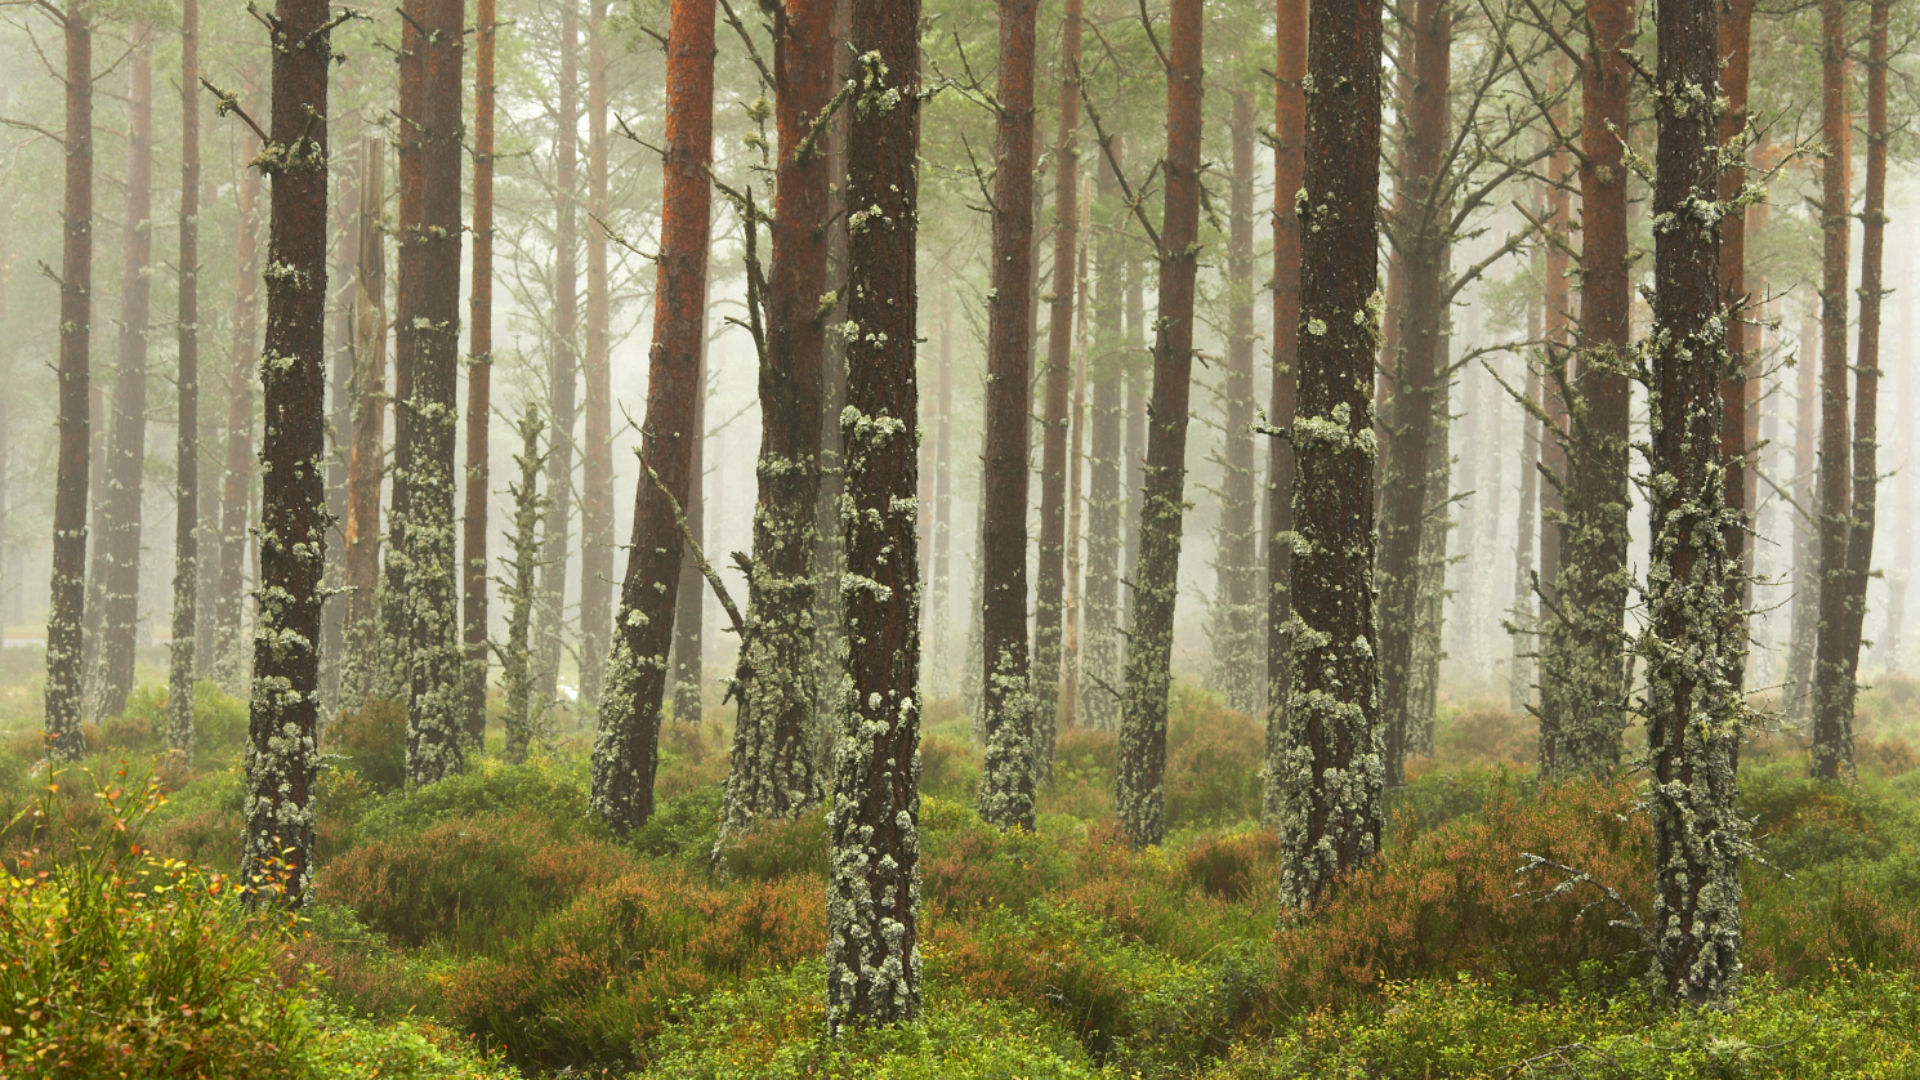 Pine Trees in Mist, Glenmore Forest Park, Aviemore, Highland Region, Scotland